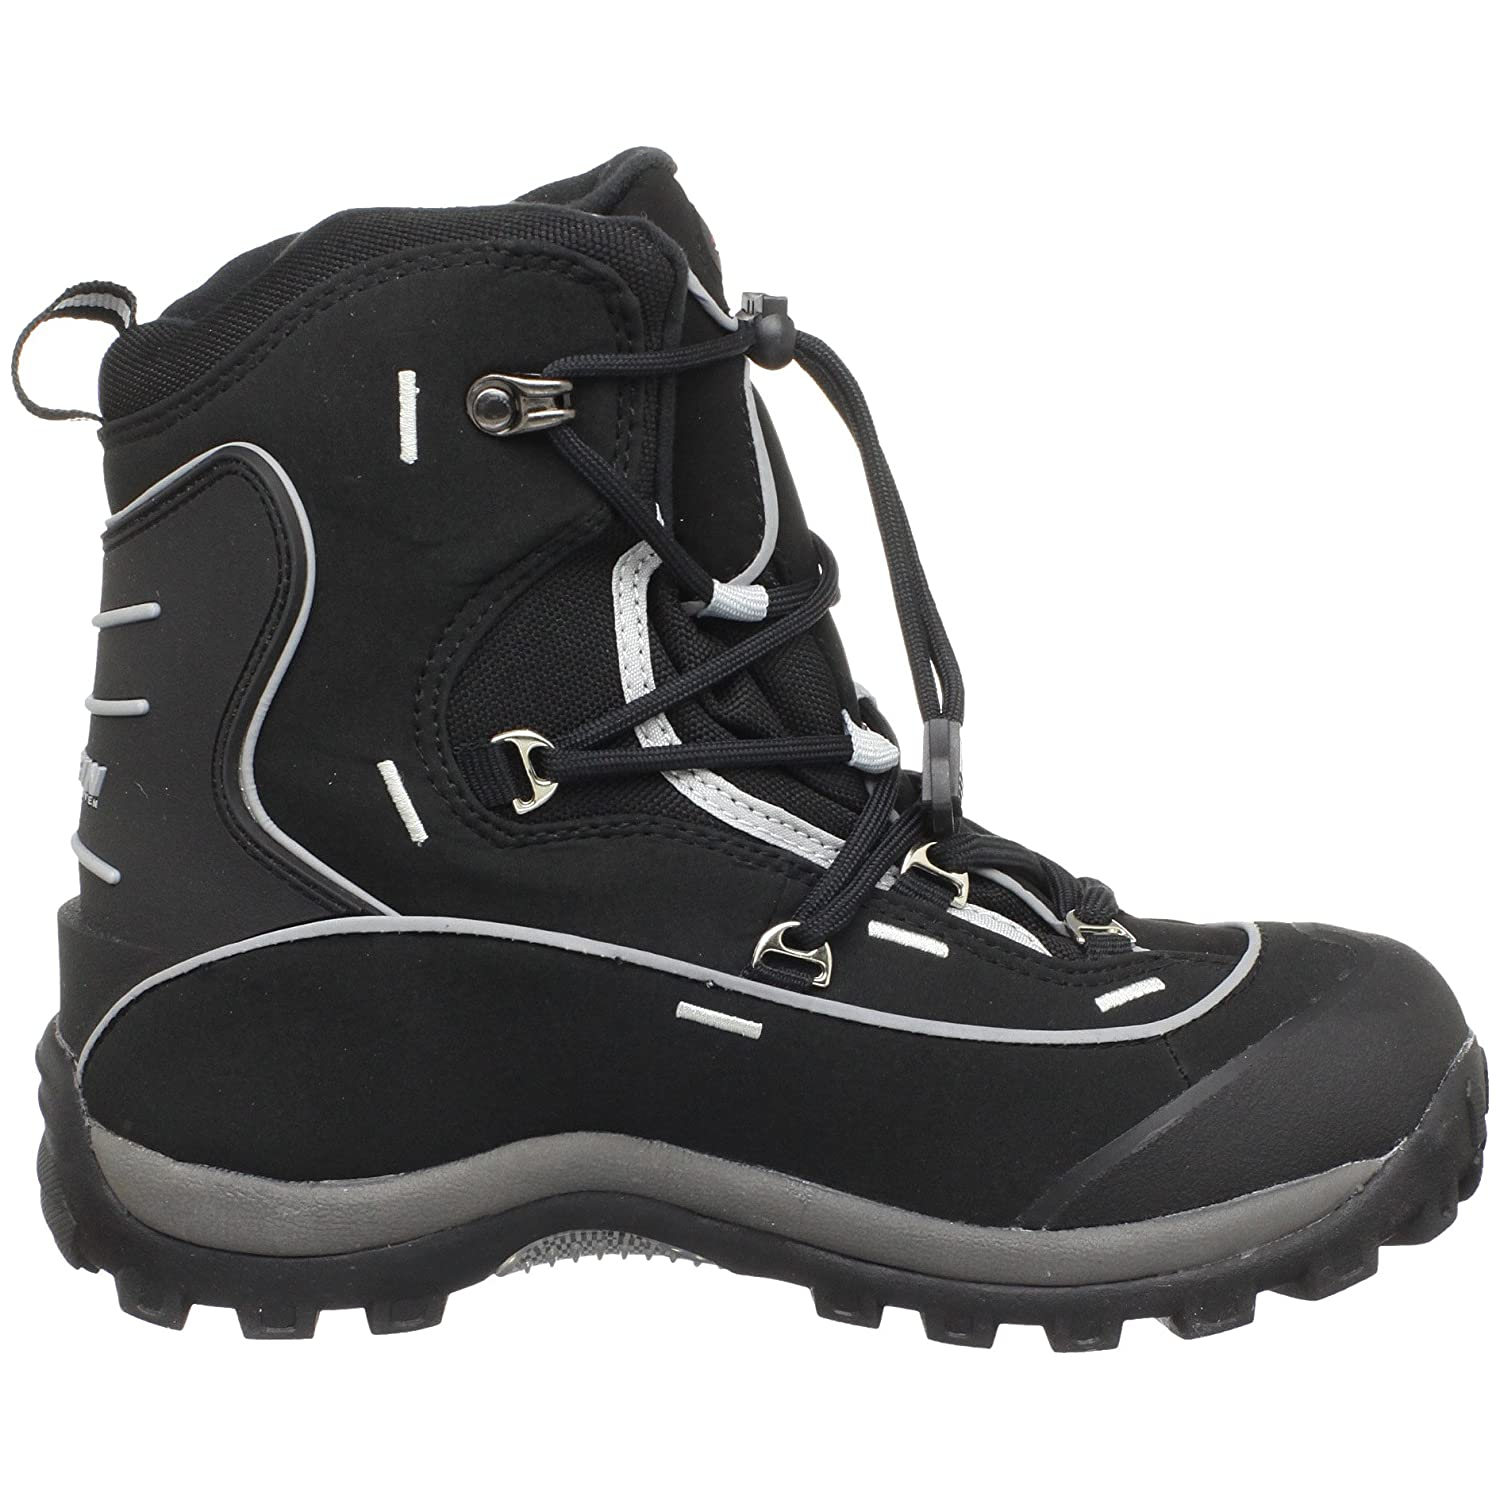 Baffin Women's Snosport Hiking Boot US|Black B003HKS8AE 11 B(M) US|Black Boot 52bafc